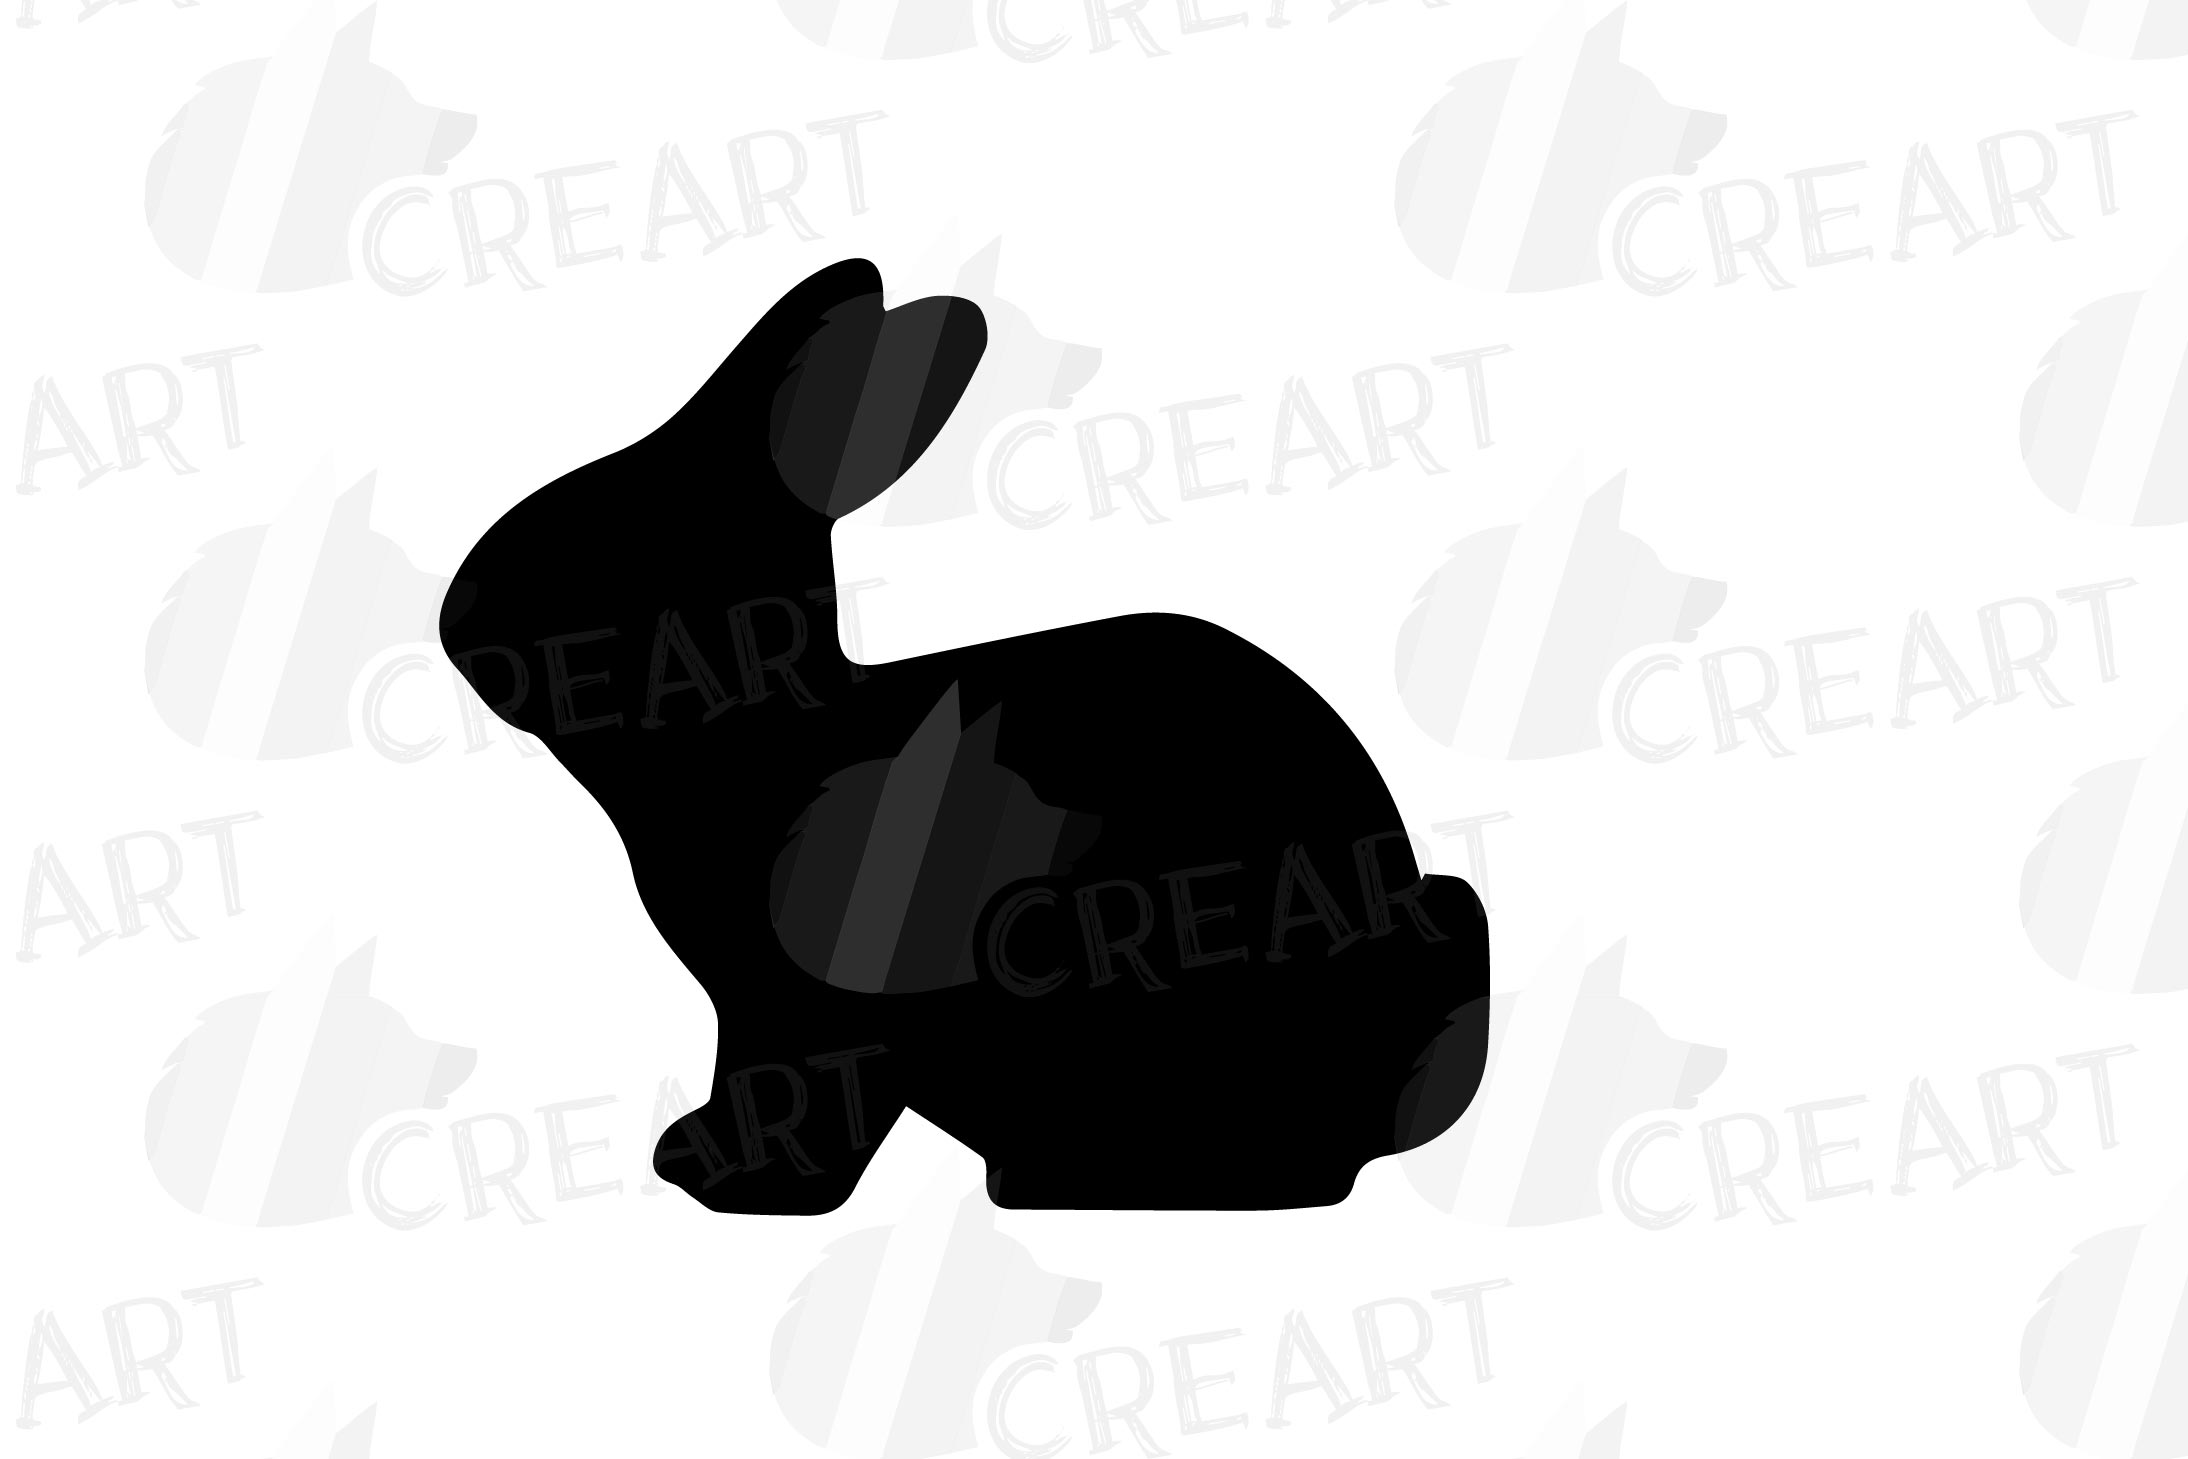 Rabbit family silhouettes, bunny silhouette svg cutting file example image 15